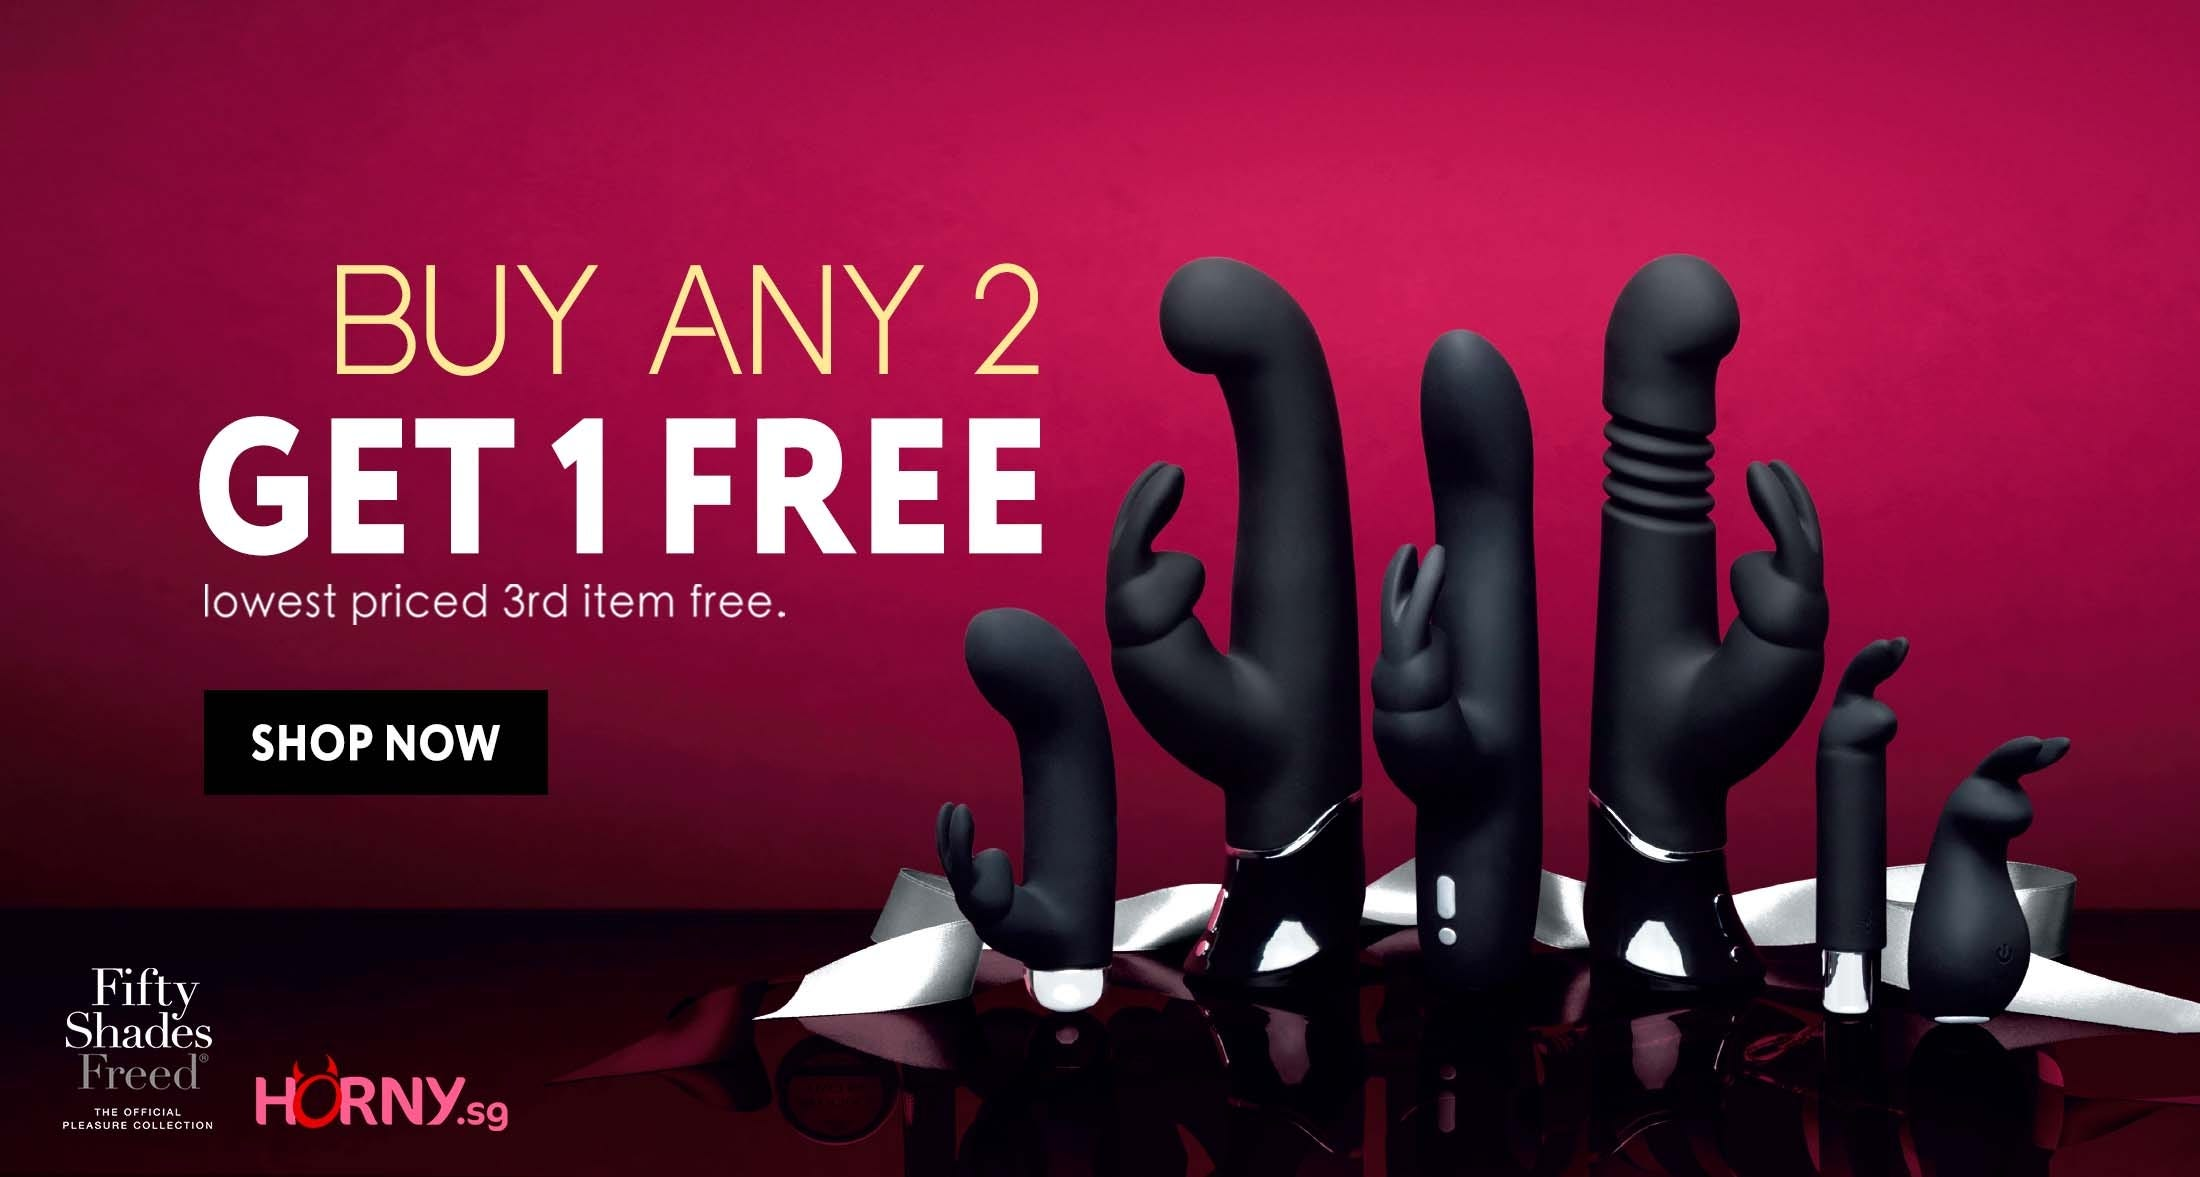 fifty shades buy 1 get 1 free